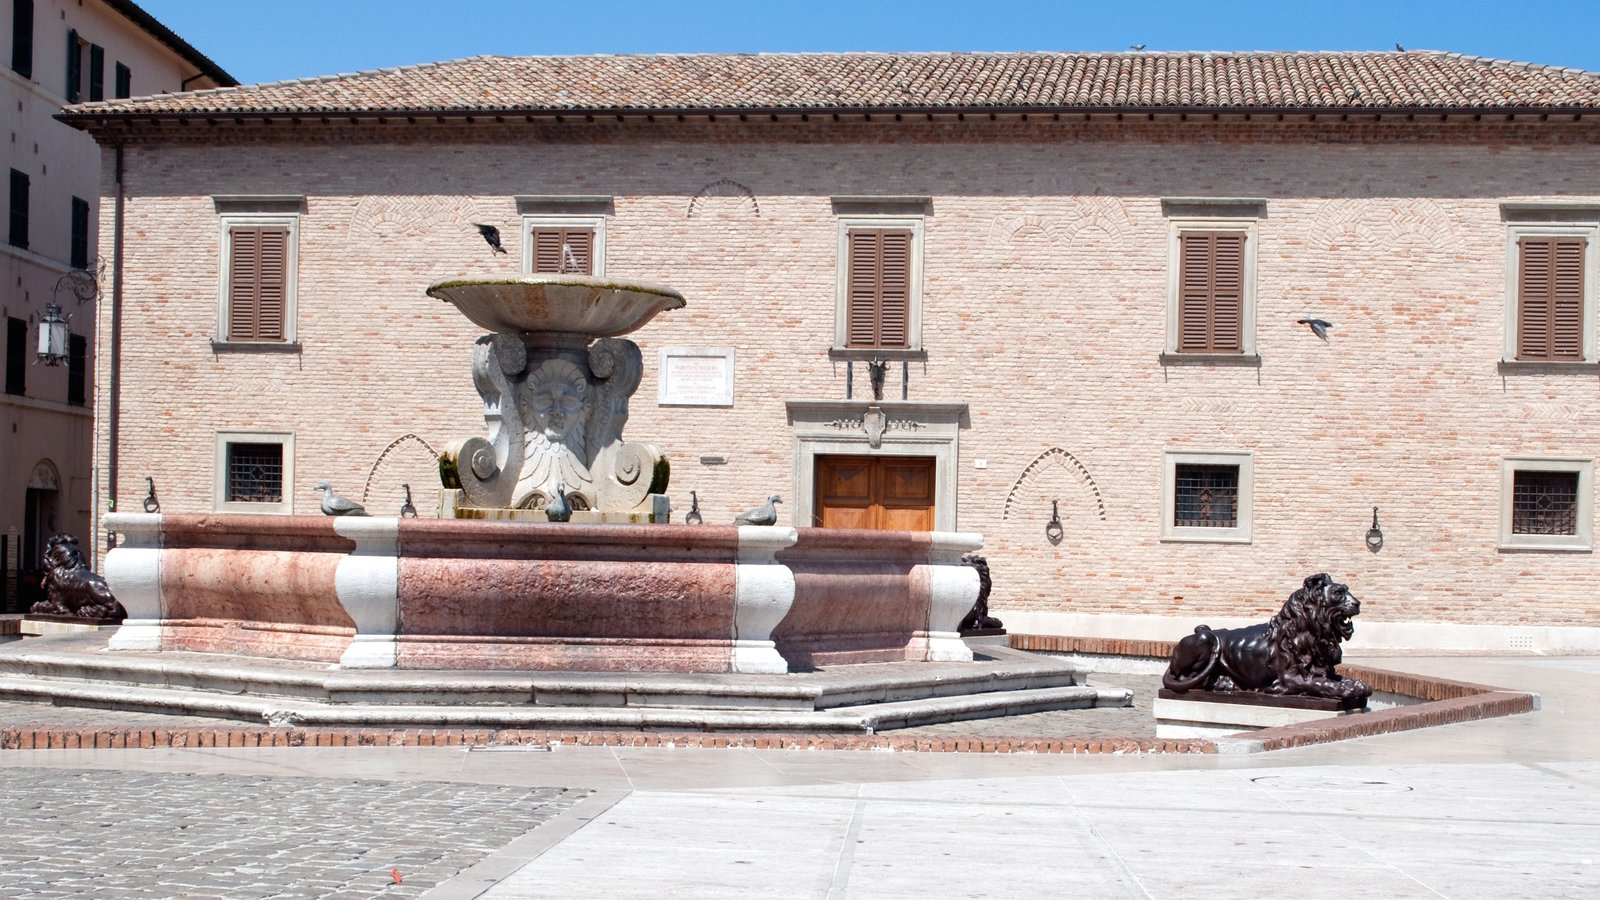 Senigallia which includes a fountain and a square or plaza